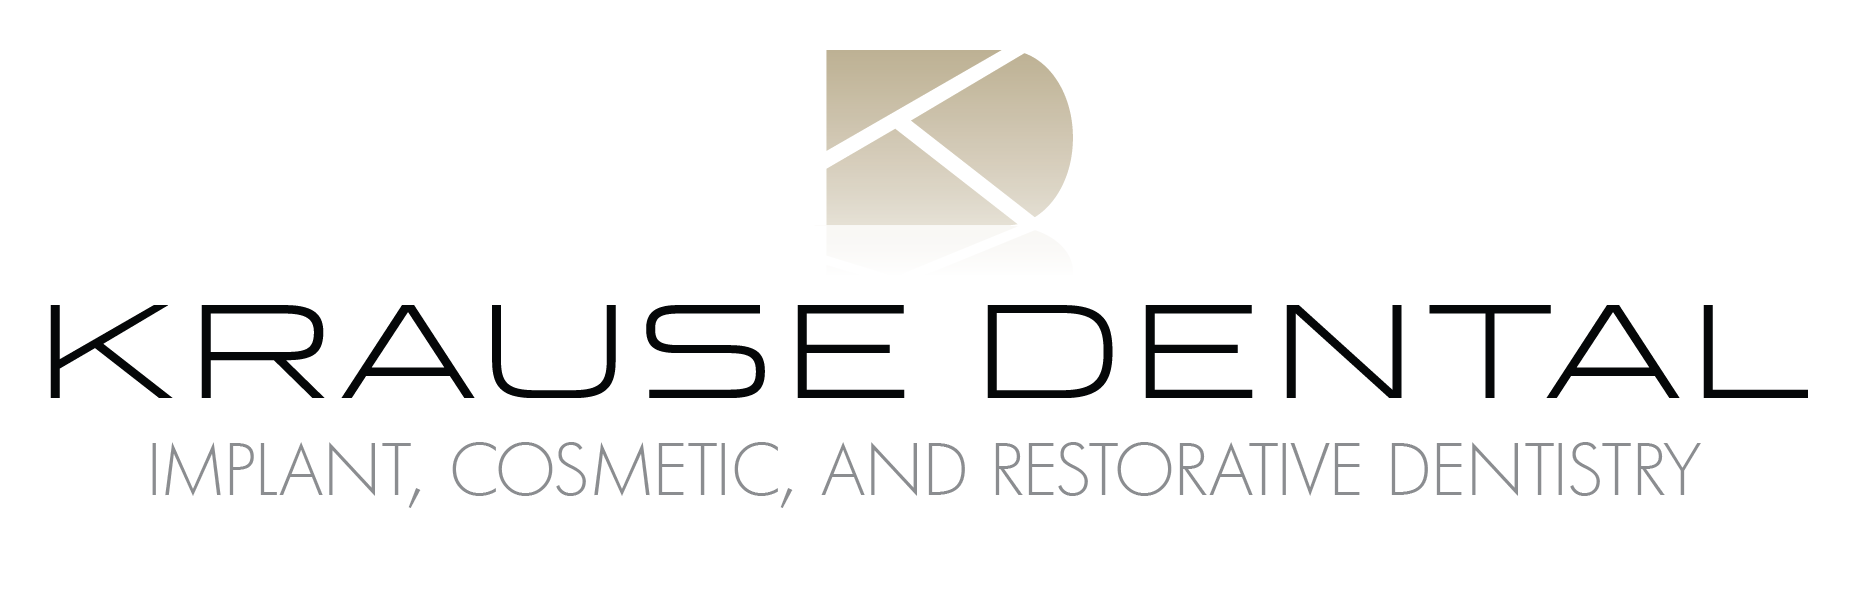 krause dental logo